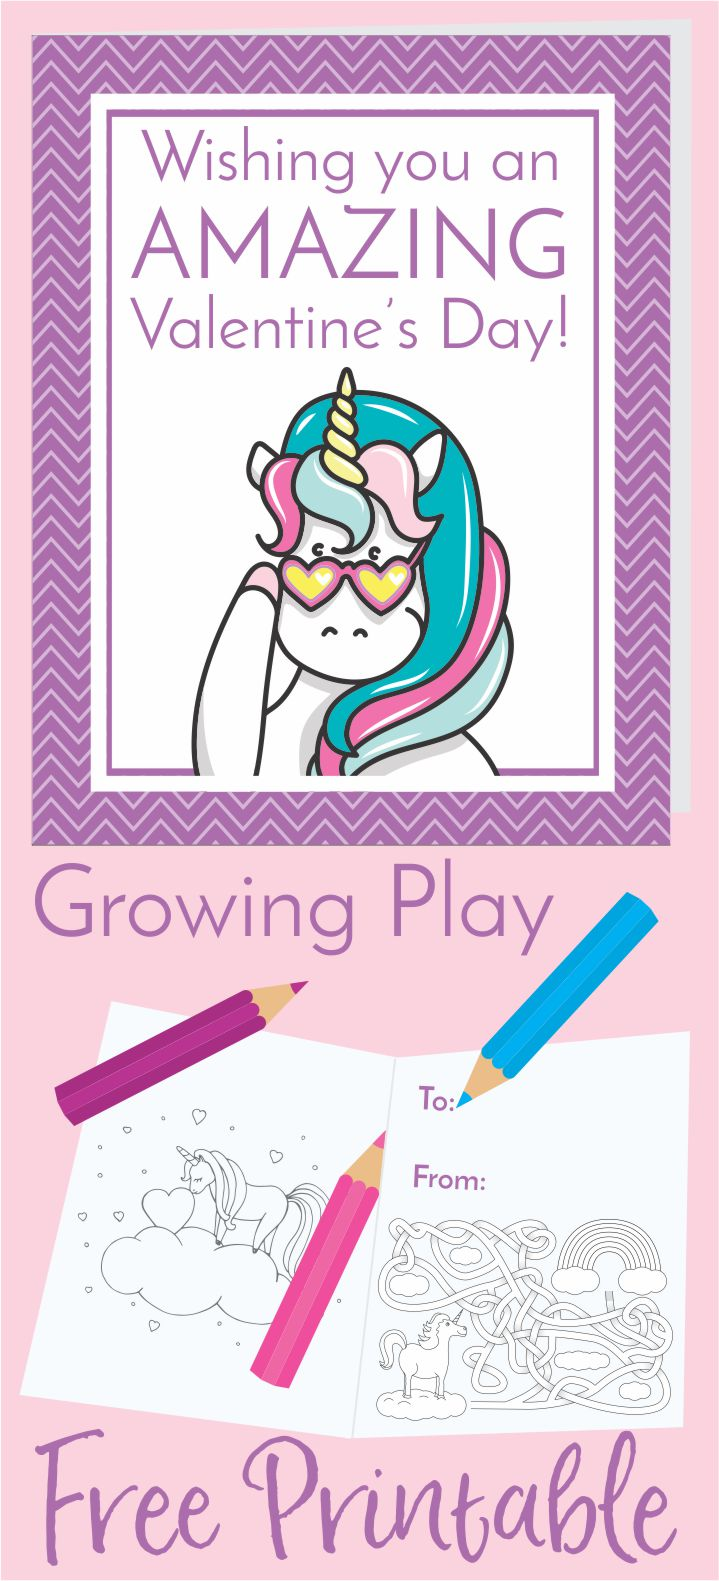 Unicorn Valentine's Day Card Freebie from Growing Play